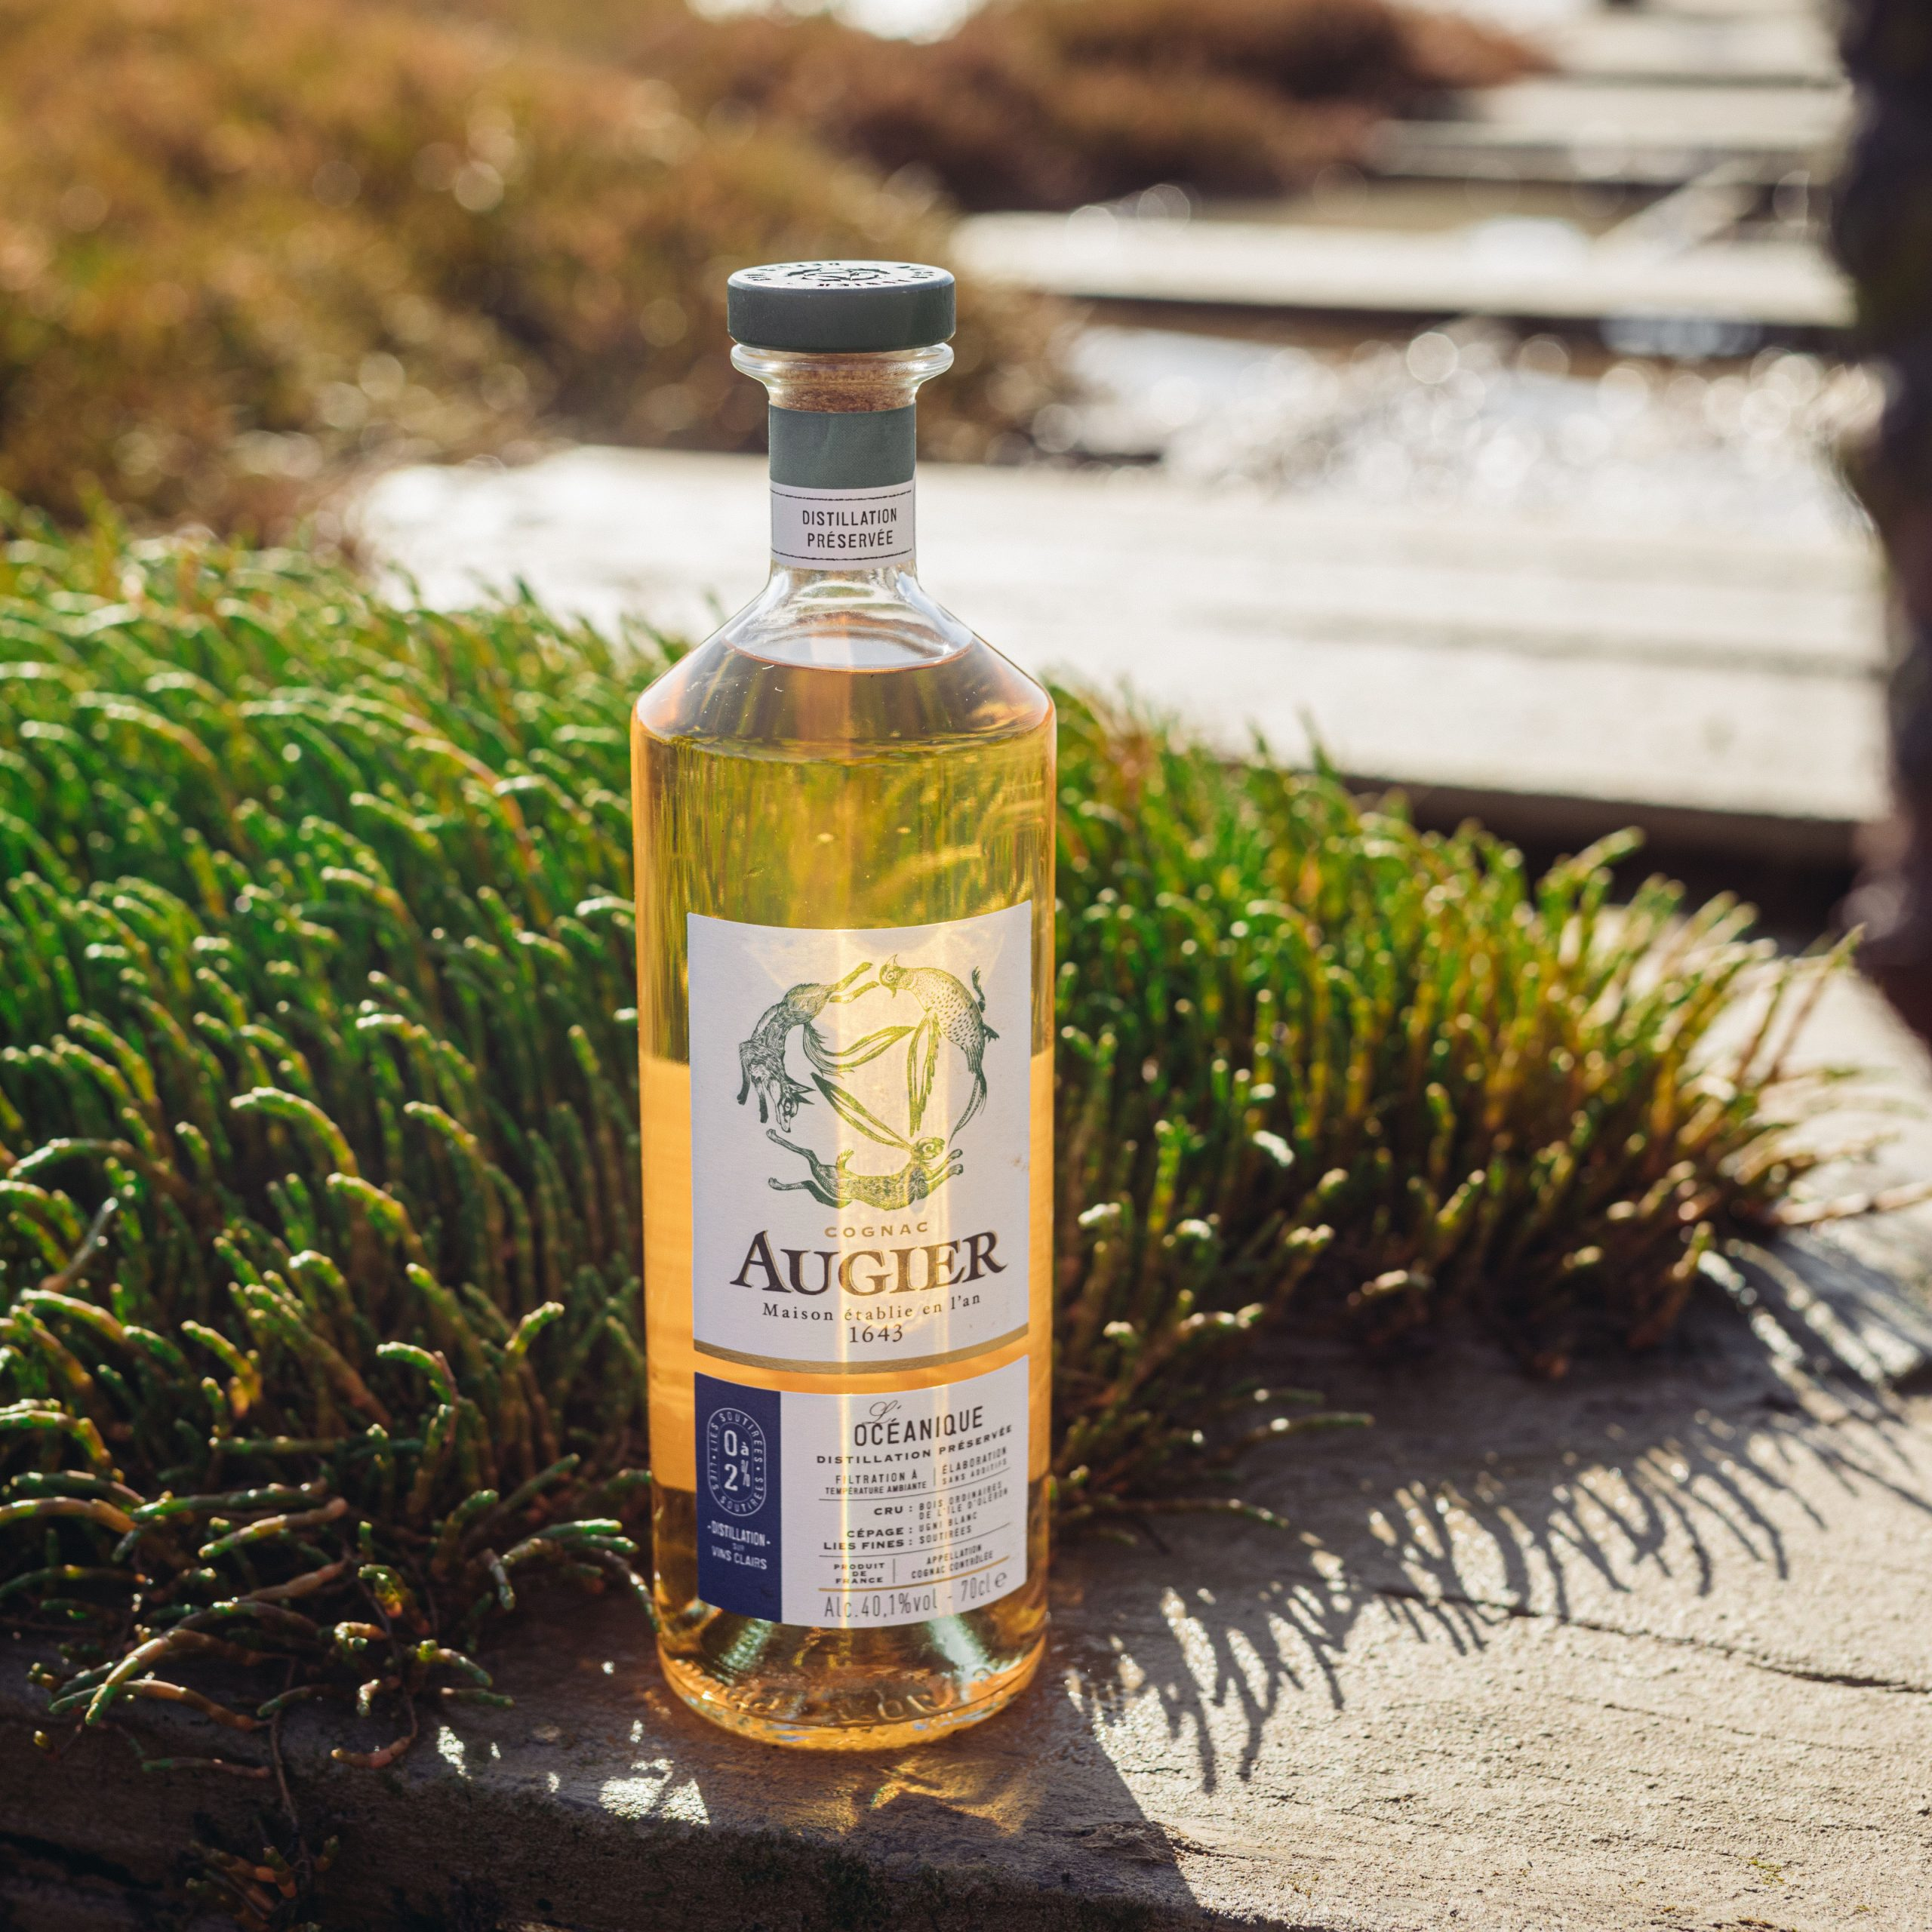 Crafted-by-the-ocean-augier-cognac-4